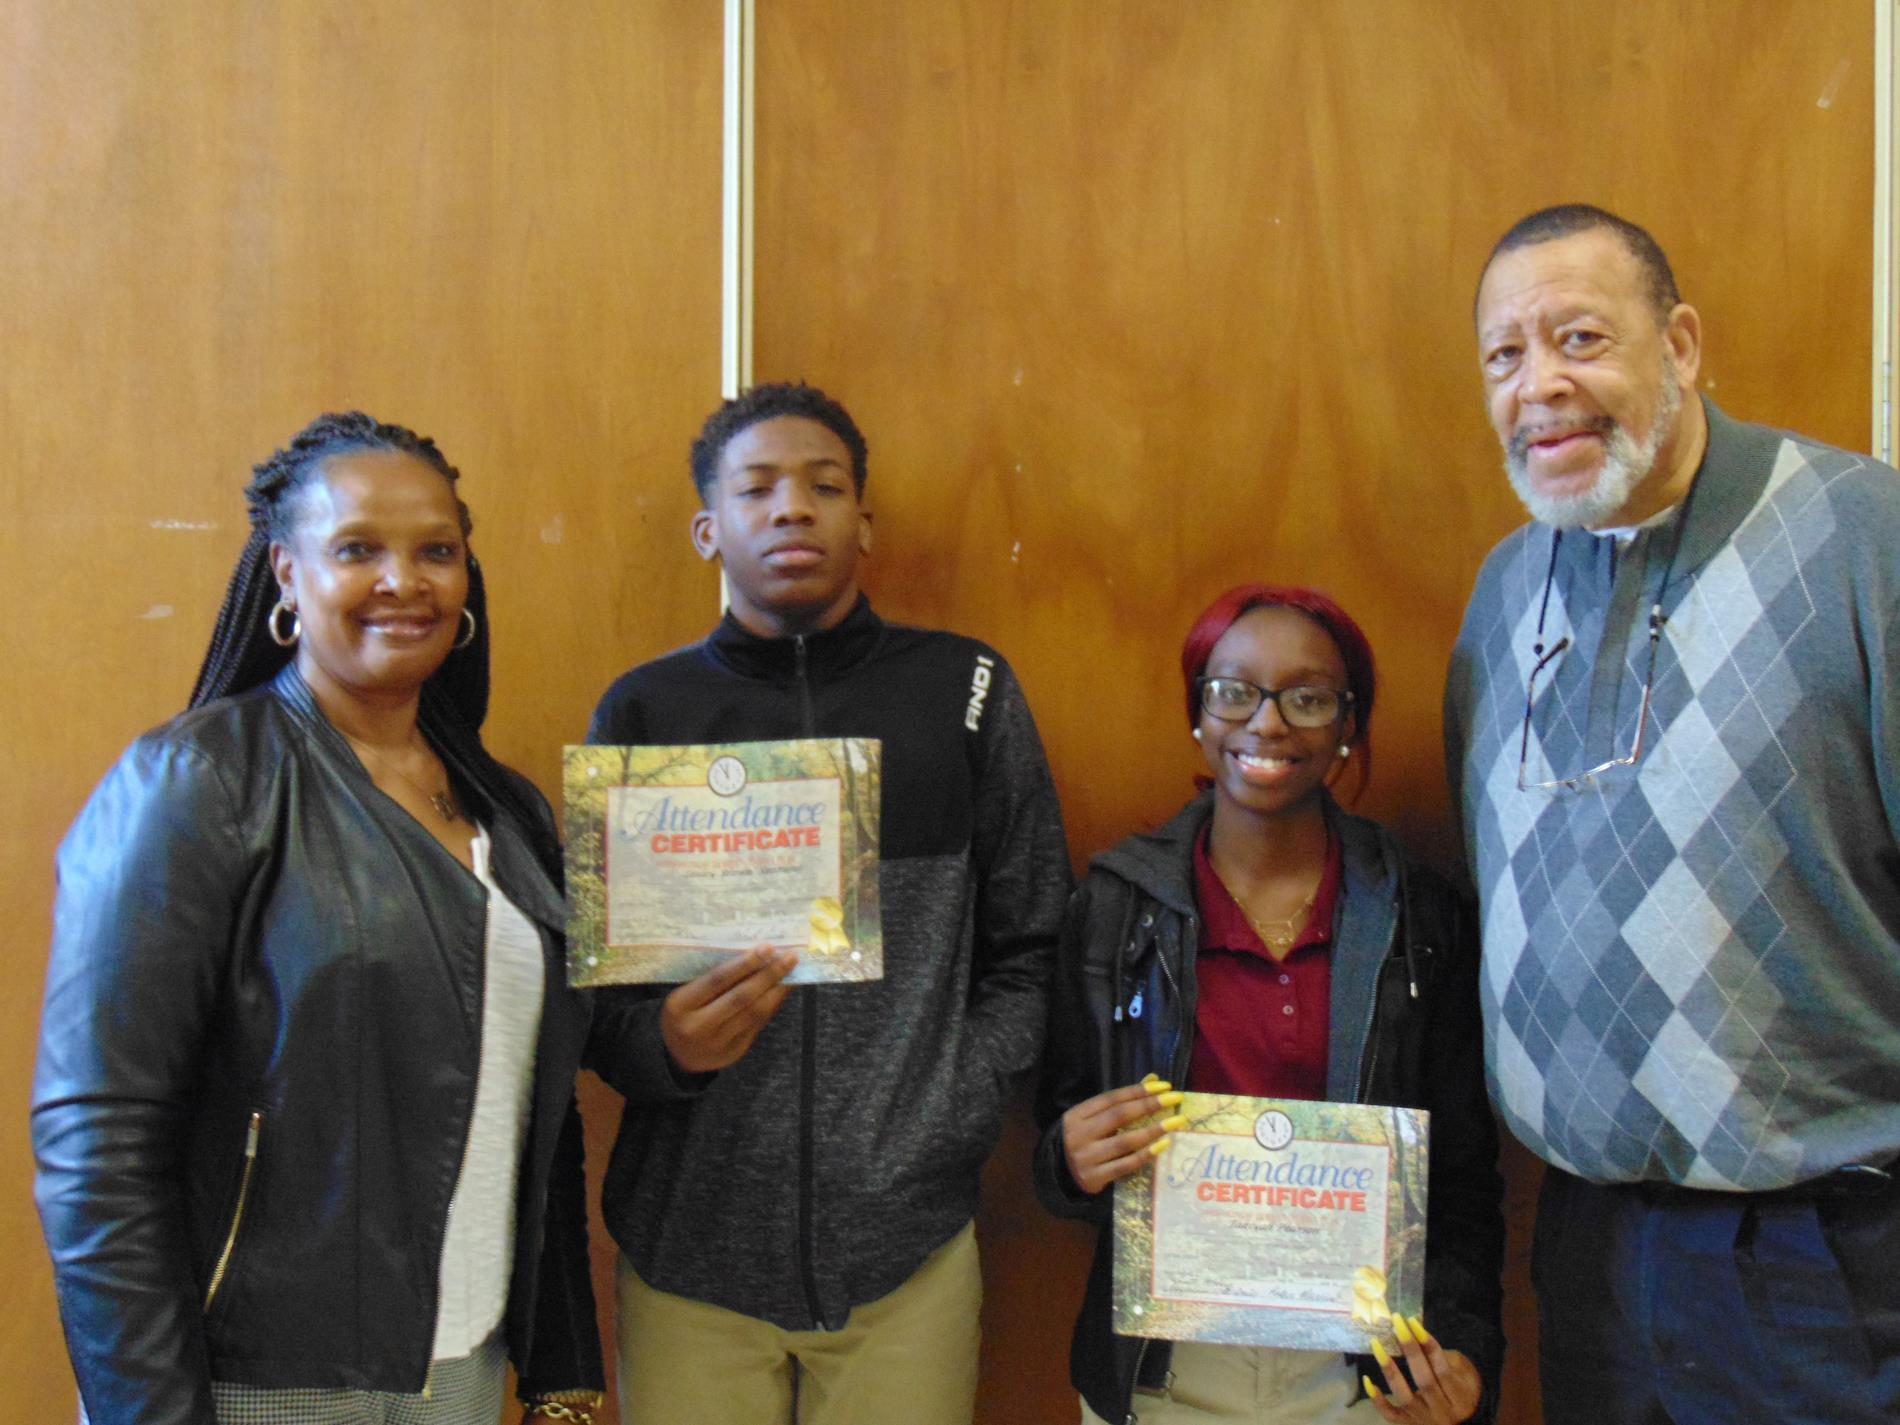 Lesley Brown and Takayia Pearson got improved attendance awards